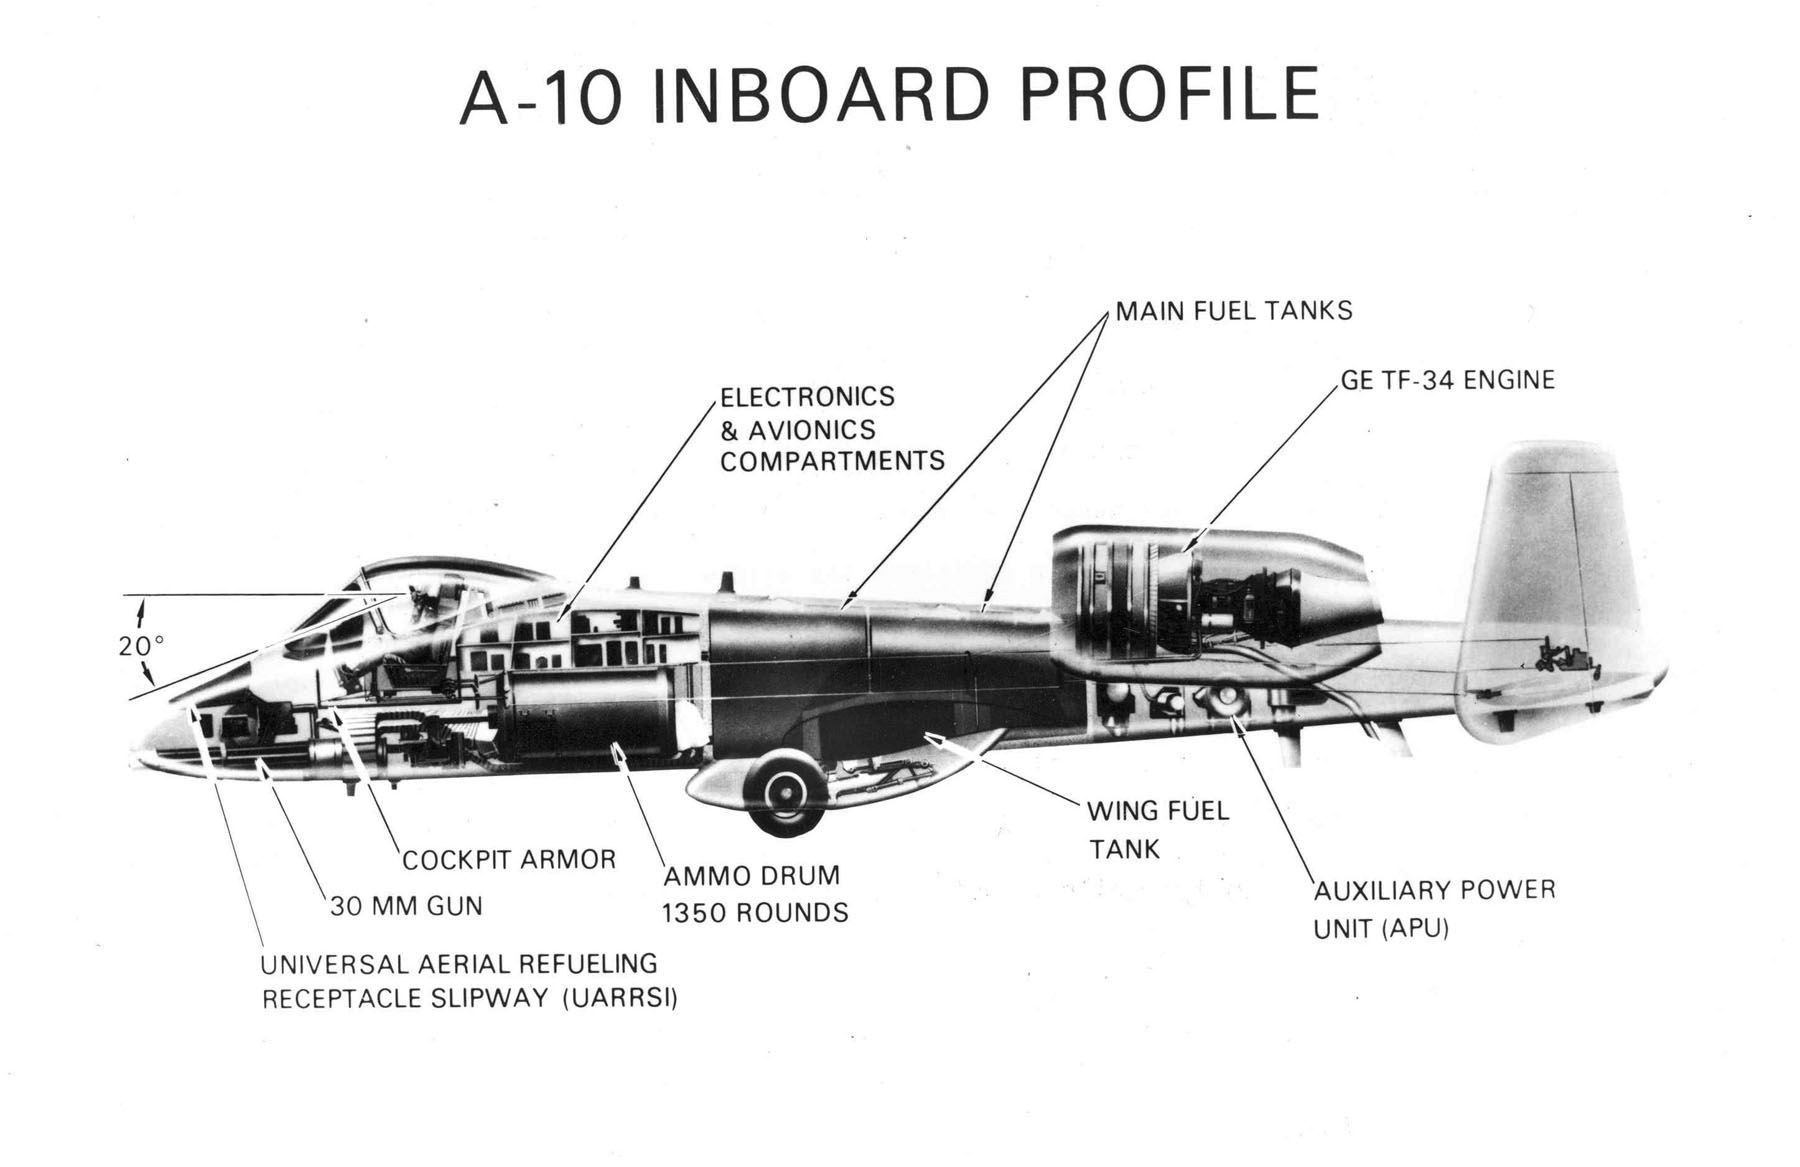 http://upload.wikimedia.org/wikipedia/commons/d/da/A-10_Cross_Section.jpg